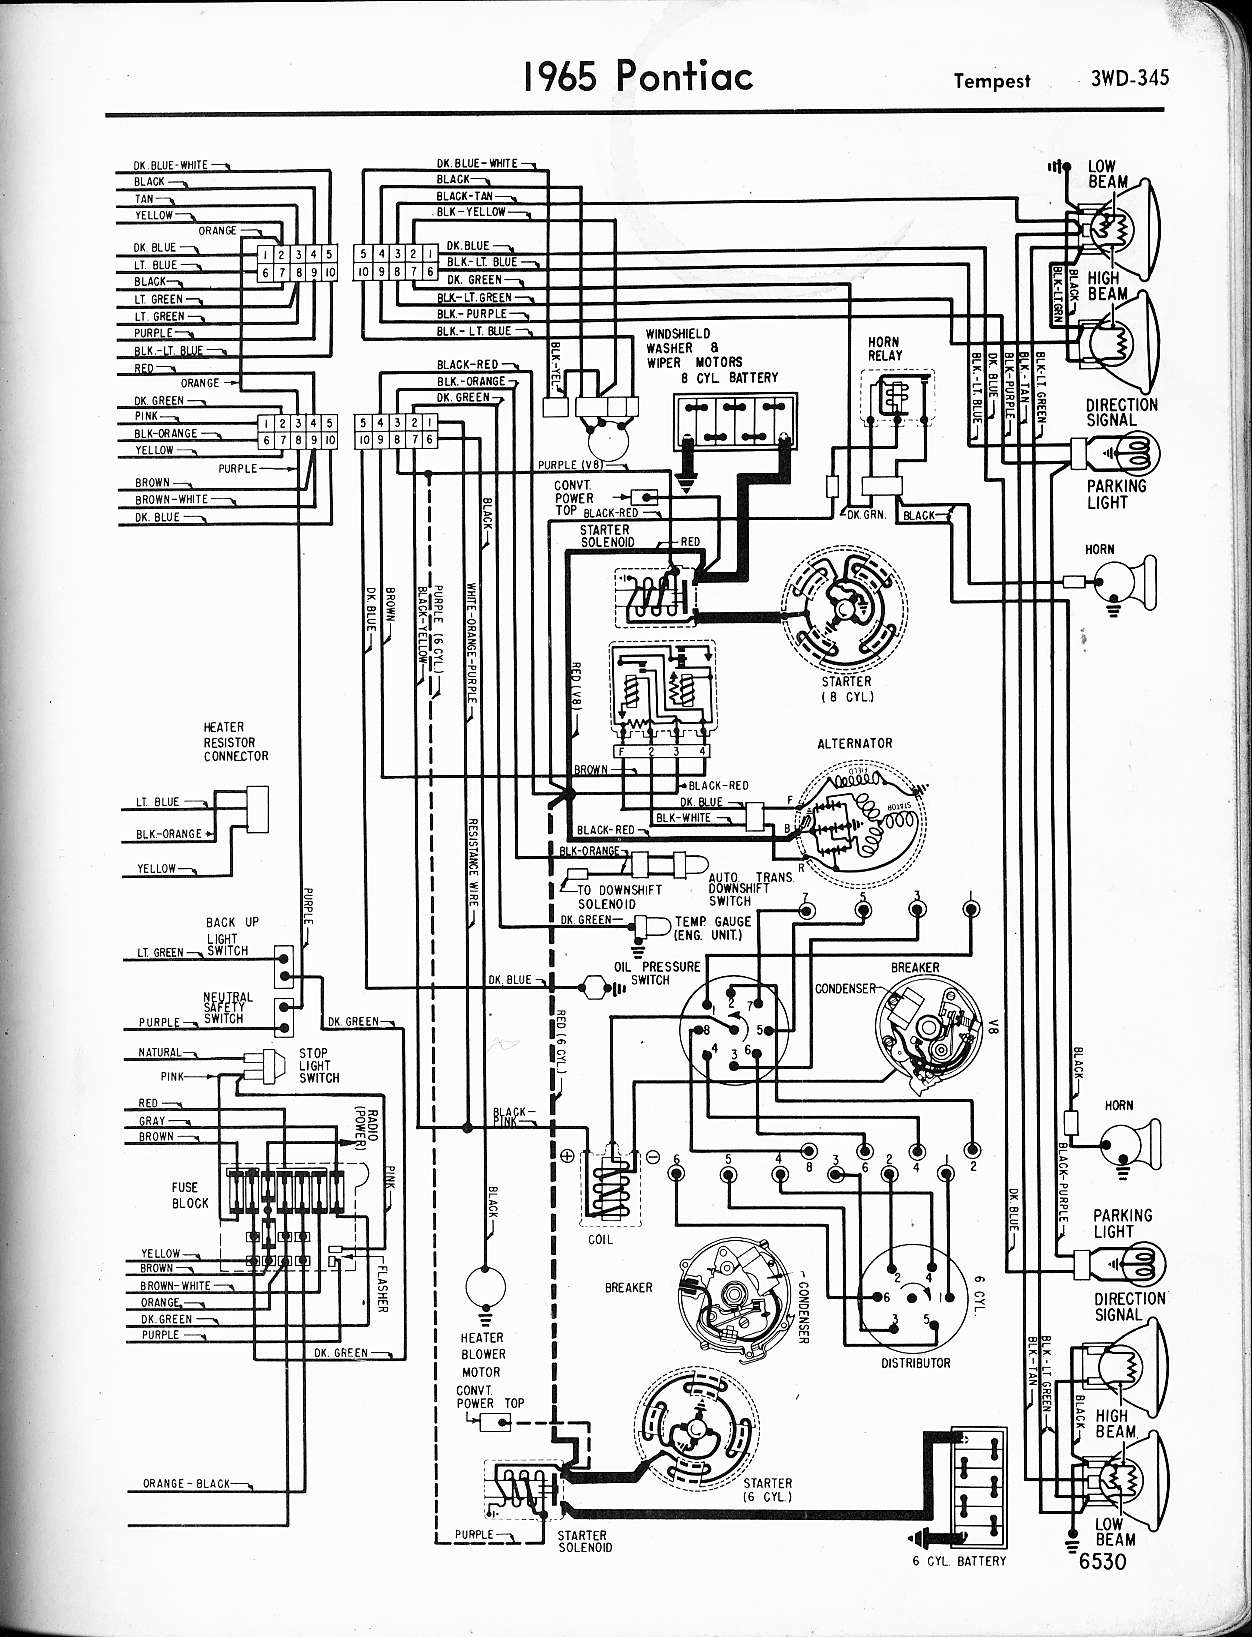 1968 pontiac wiring diagram